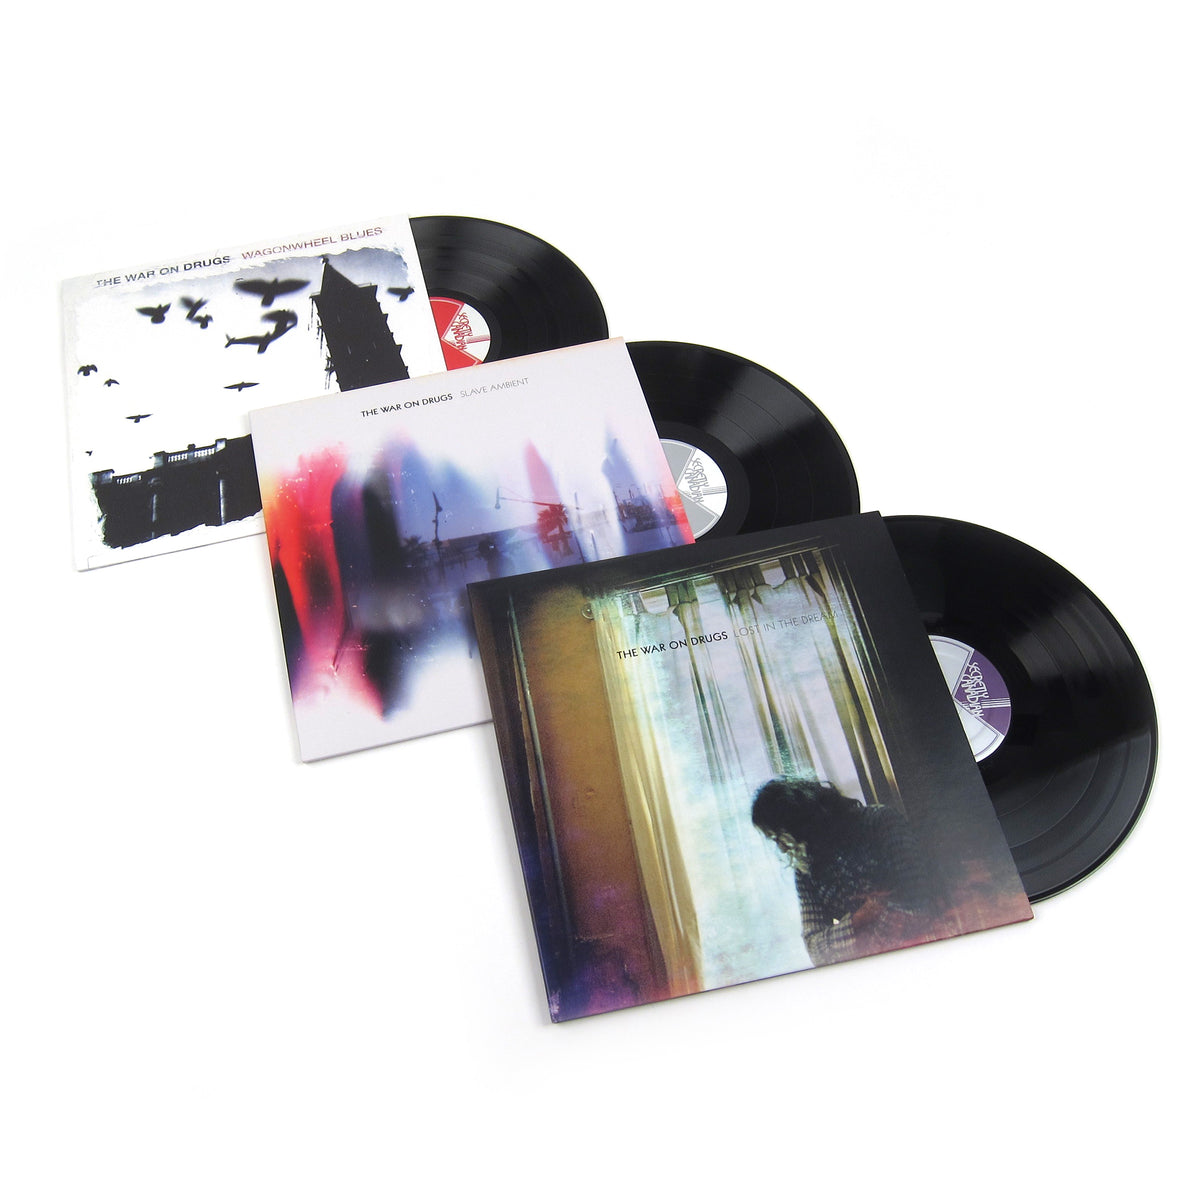 The War On Drugs: Vinyl LP Album Pack (Wagonwheel Blues, Slave Ambient, Lost In The Dream)